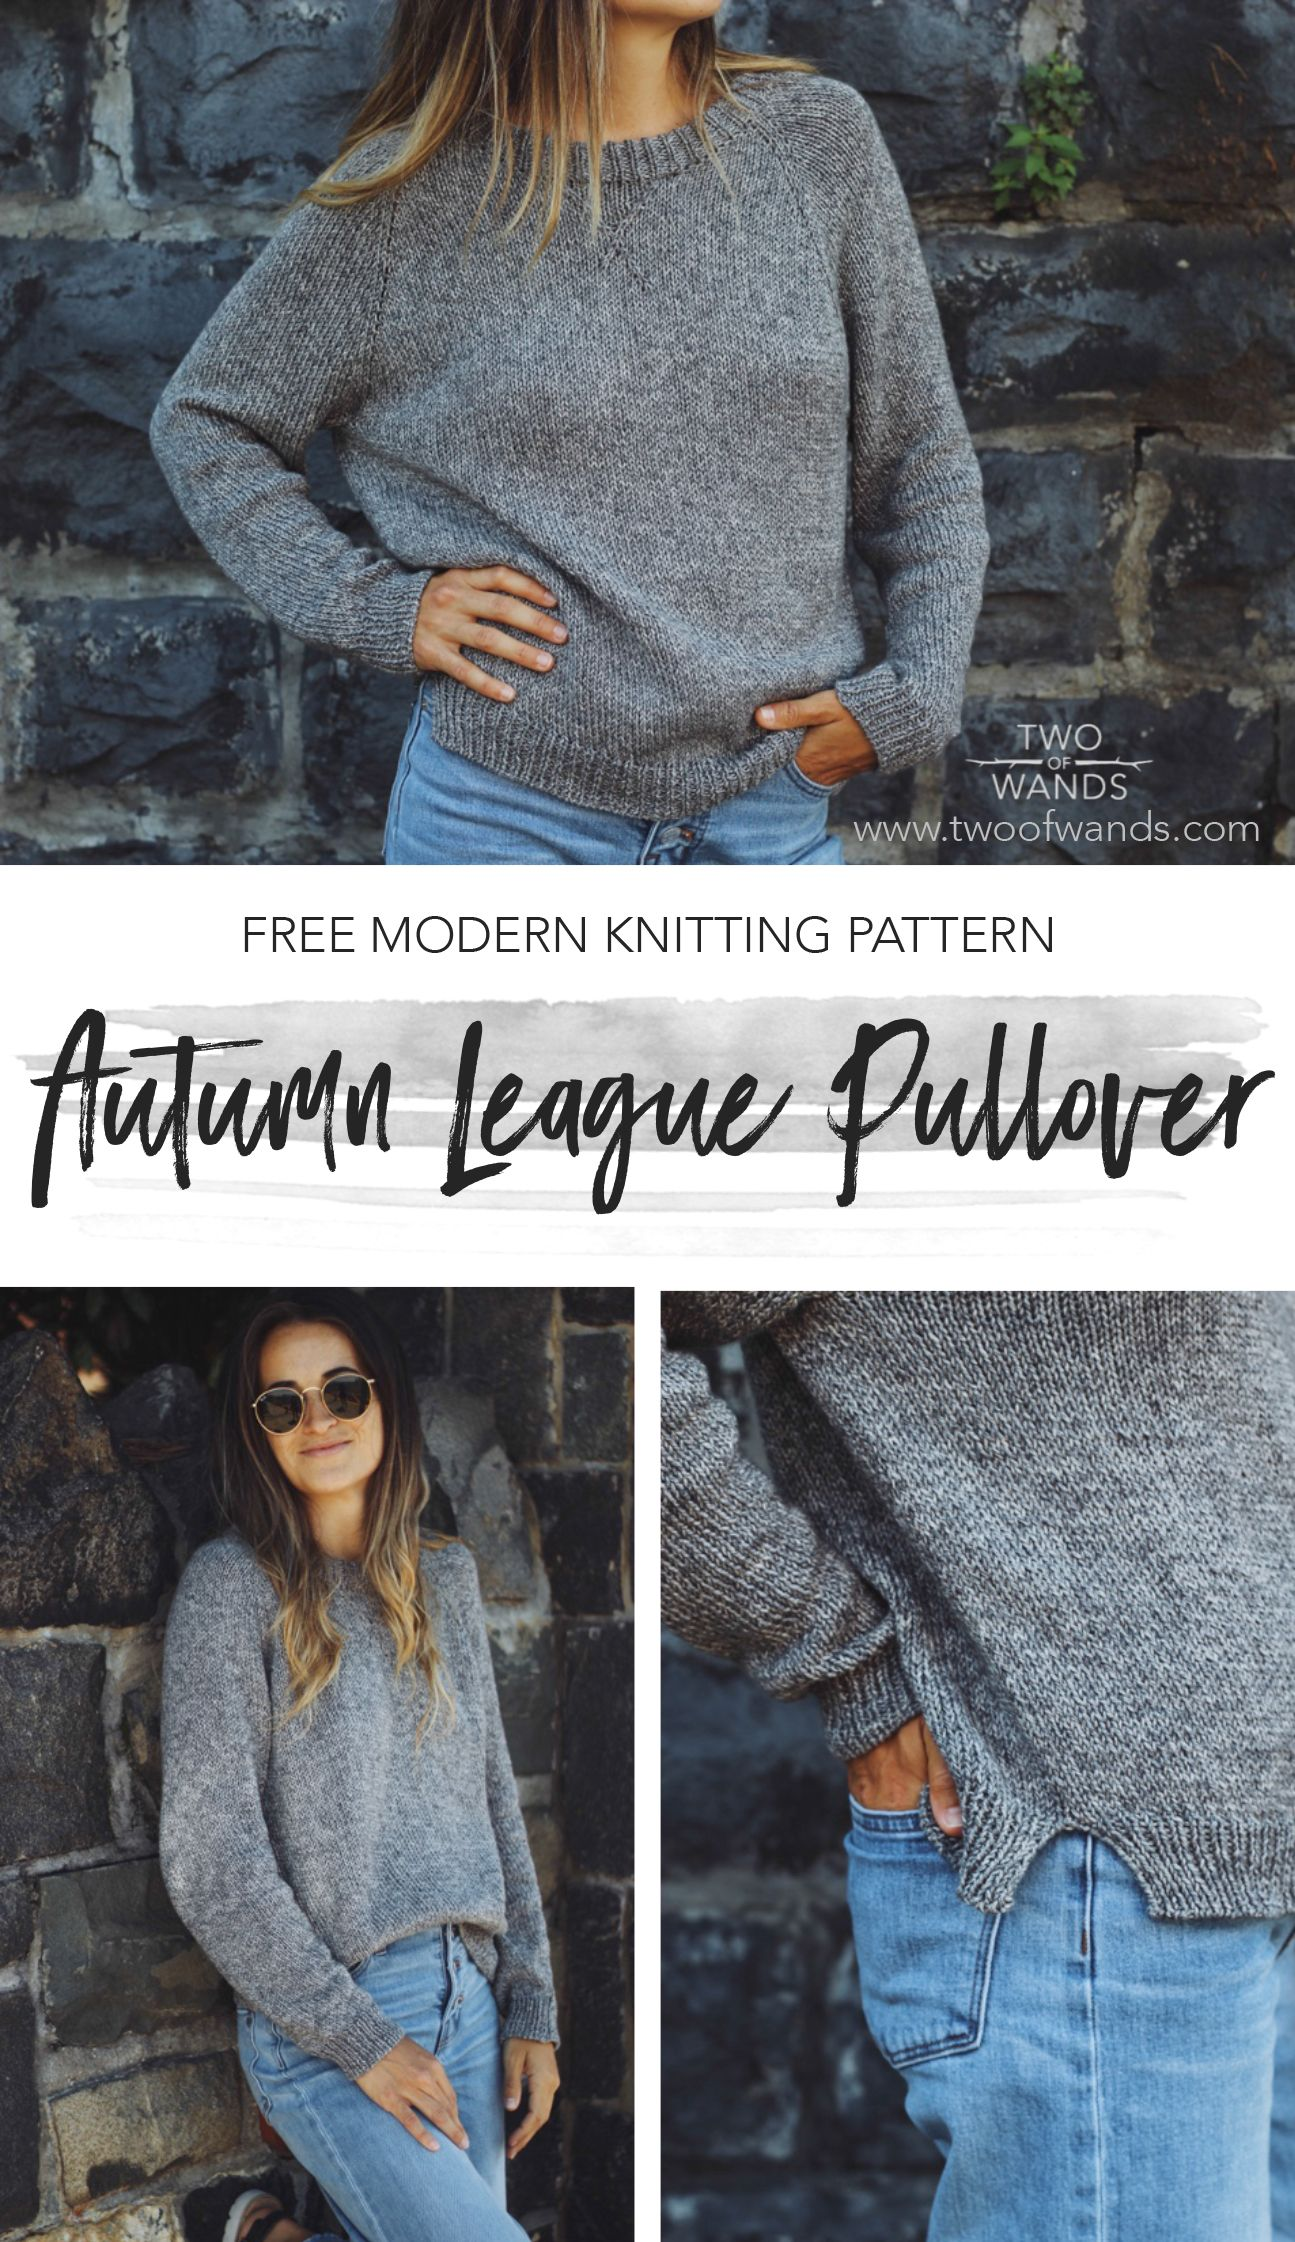 Free Top Down Raglan Sweatshirt Style Sweater Knitting Pattern with V-Neck Detail and Side Slits #freeknittingpatterns